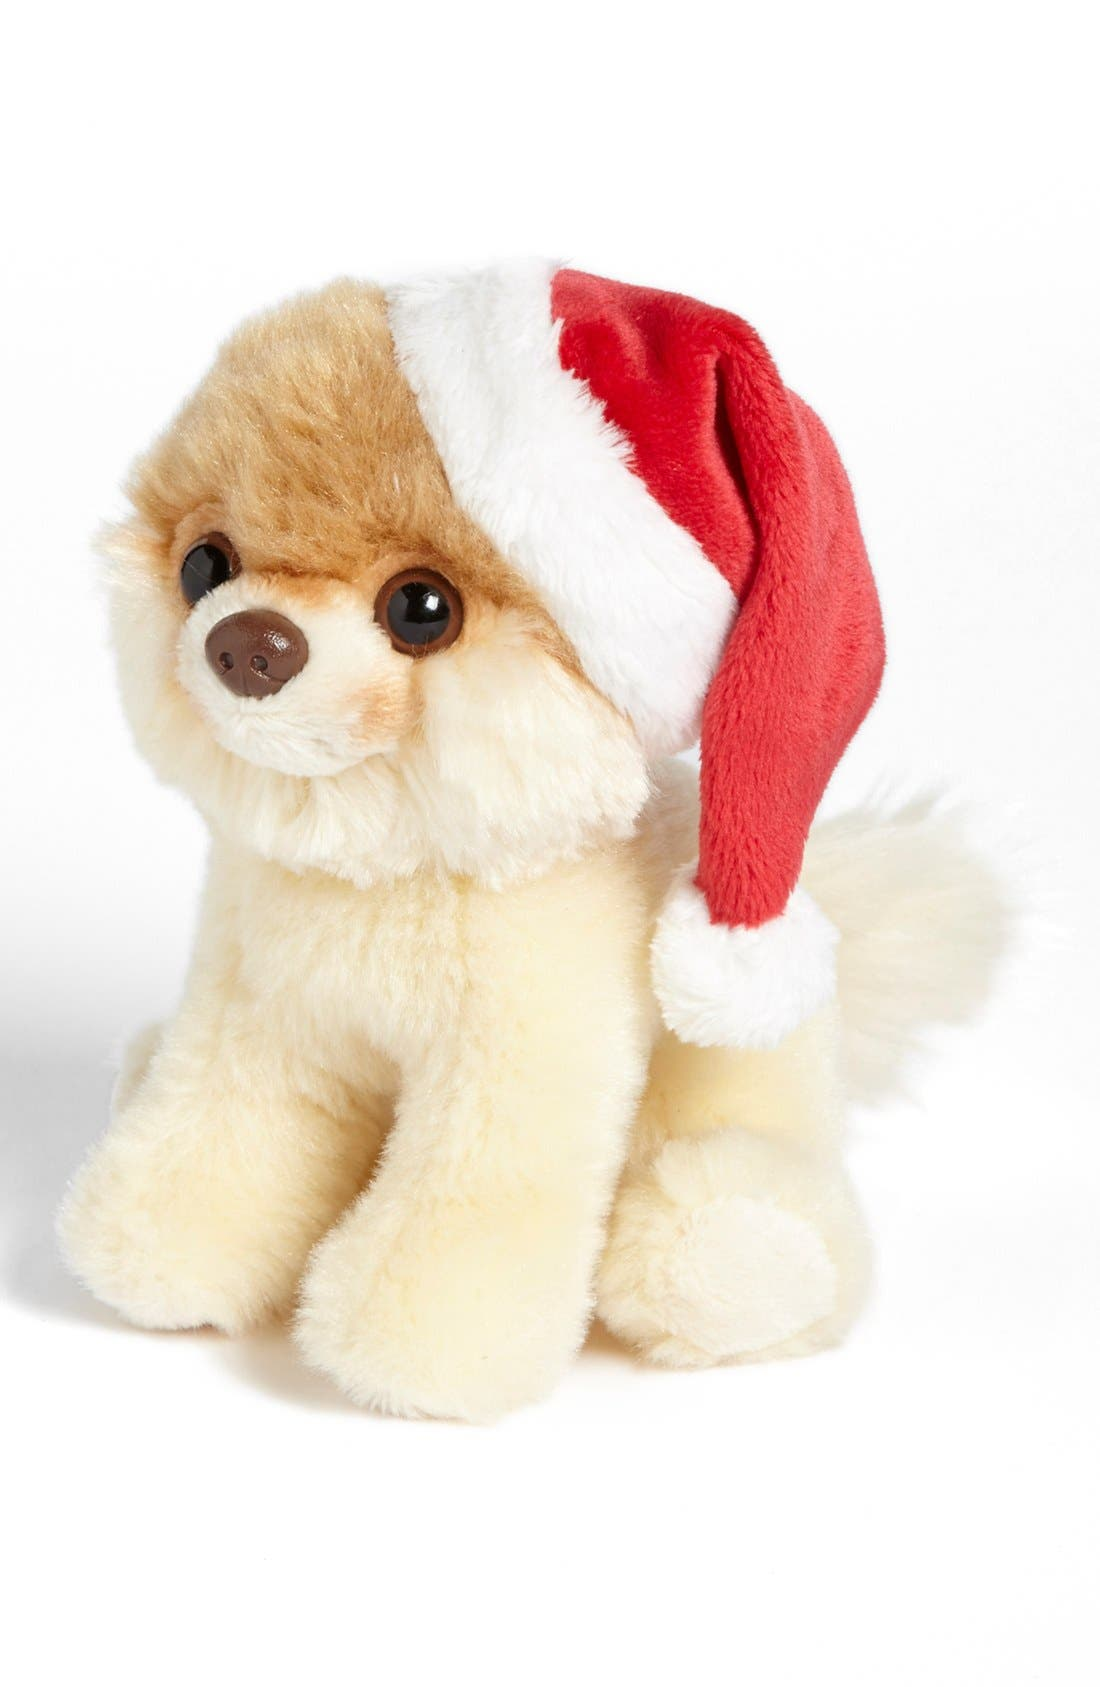 Main Image - Gund 'Itty Bitty Boo - Santa Hat' Stuffed Animal